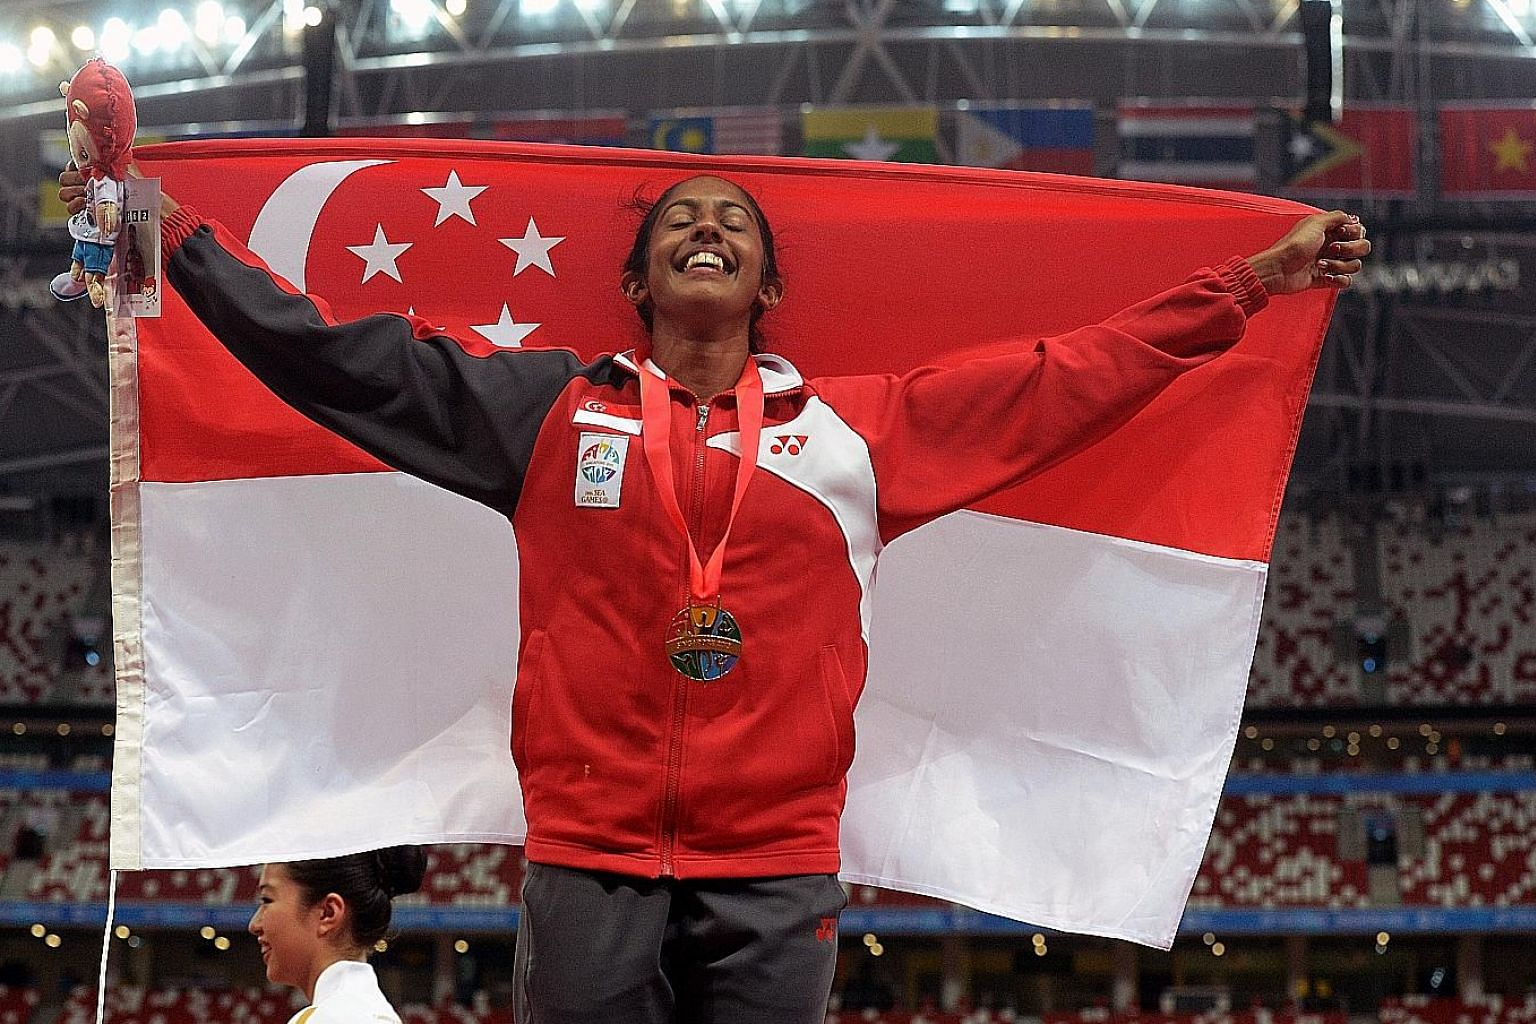 Shanti Pereira's 200m gold was one of the highlights of the 2015 SEA Games in Singapore. However, her preparations for her title defence have been marred by officials' bickering.